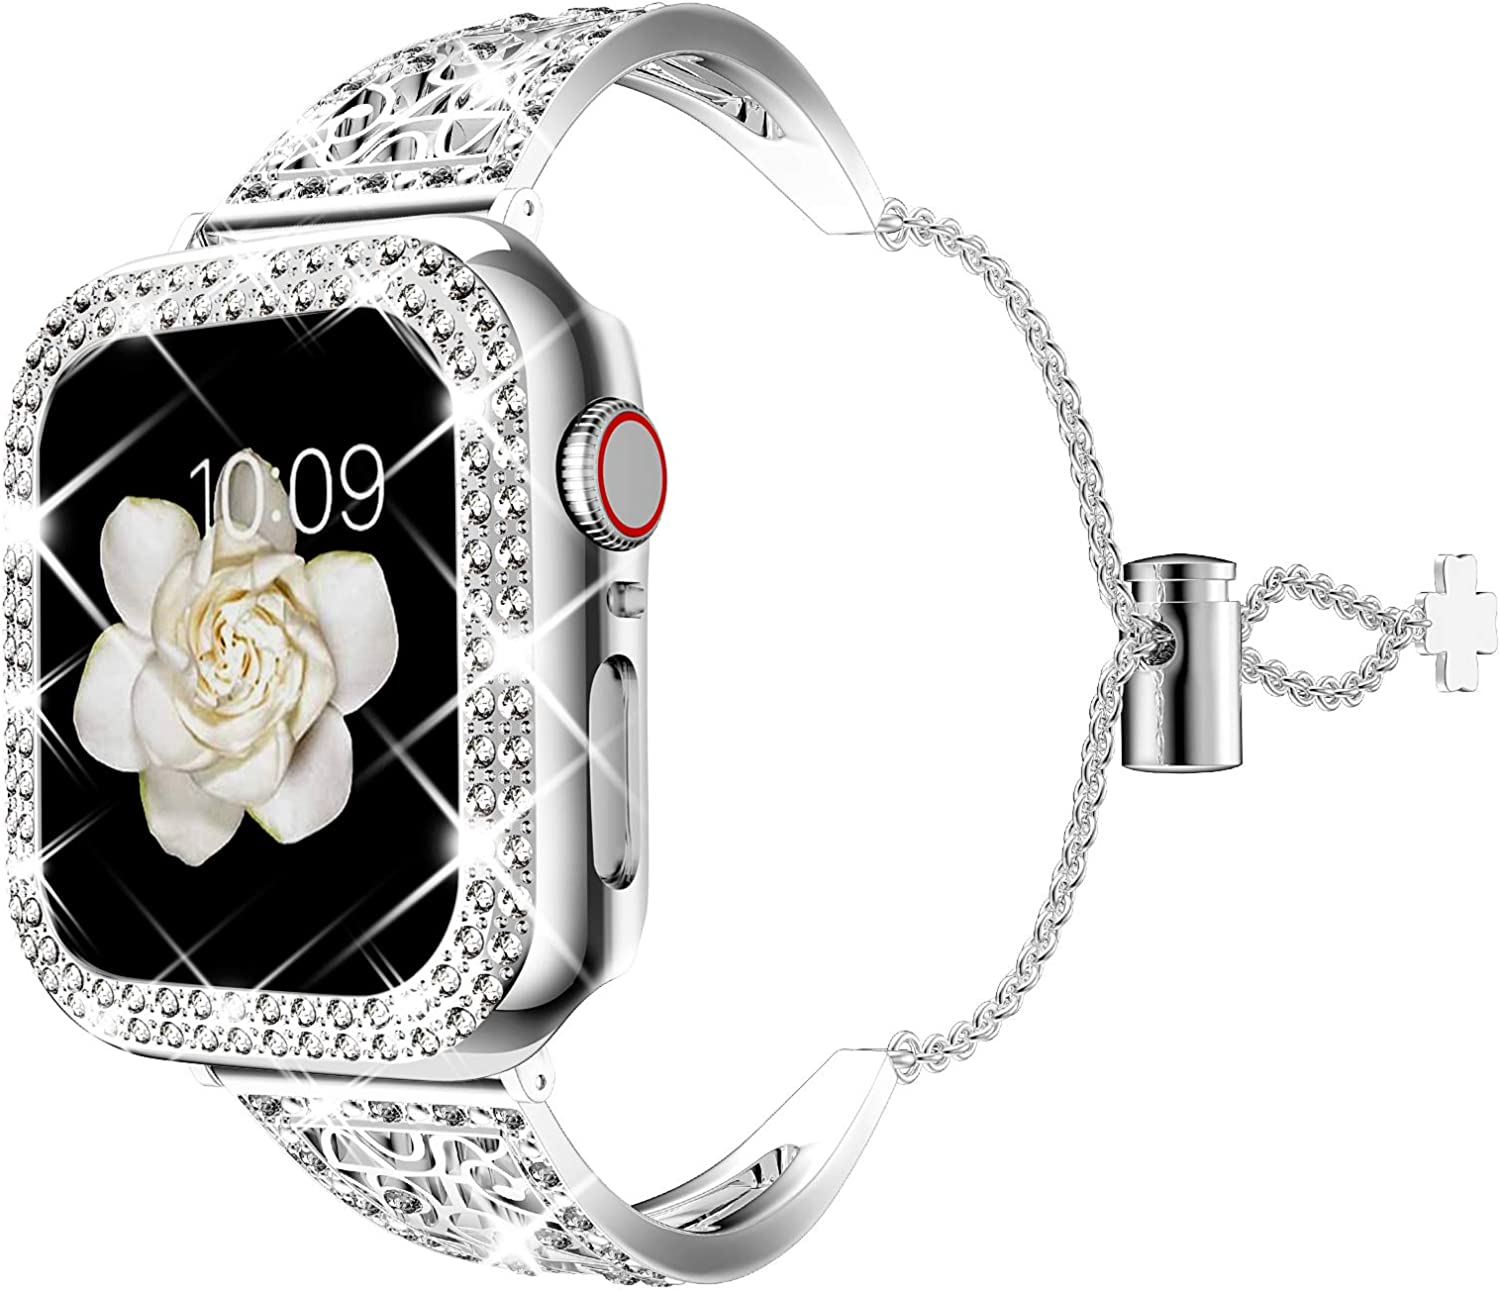 DABAOZA Compatible for Apple Watch Band 38mm 42mm with Case, Bling Women Girl Cuff Starp Dressy Dressy Replacement Bracelet Bangle Wristband with Shiny Bumper Cover for iWatch Series 3 2 1